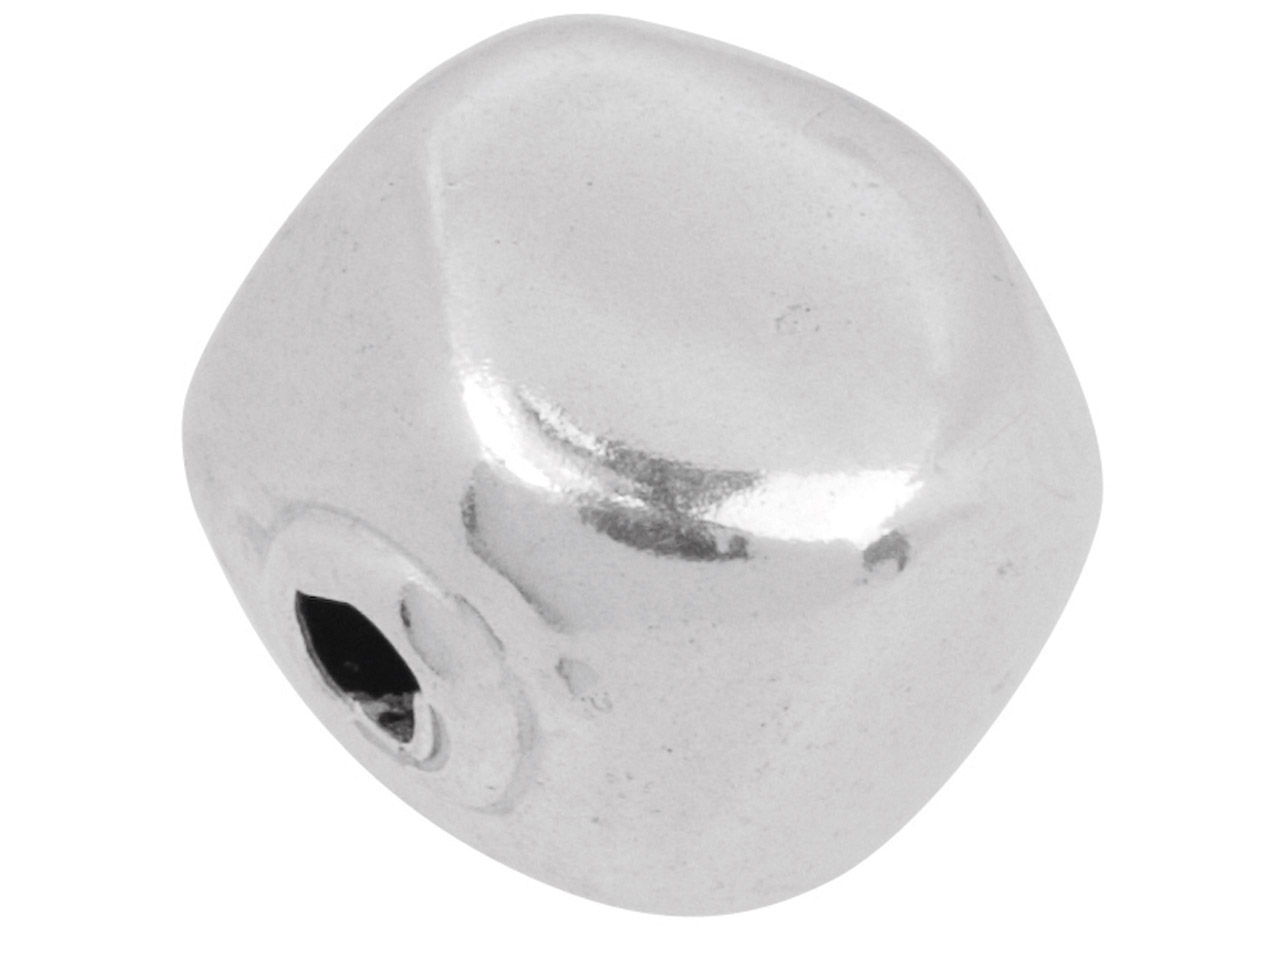 Sterling Silver Fancy Bead 9.5mm,  Bright Finish, Round With Flat     Sides, 2 Hole